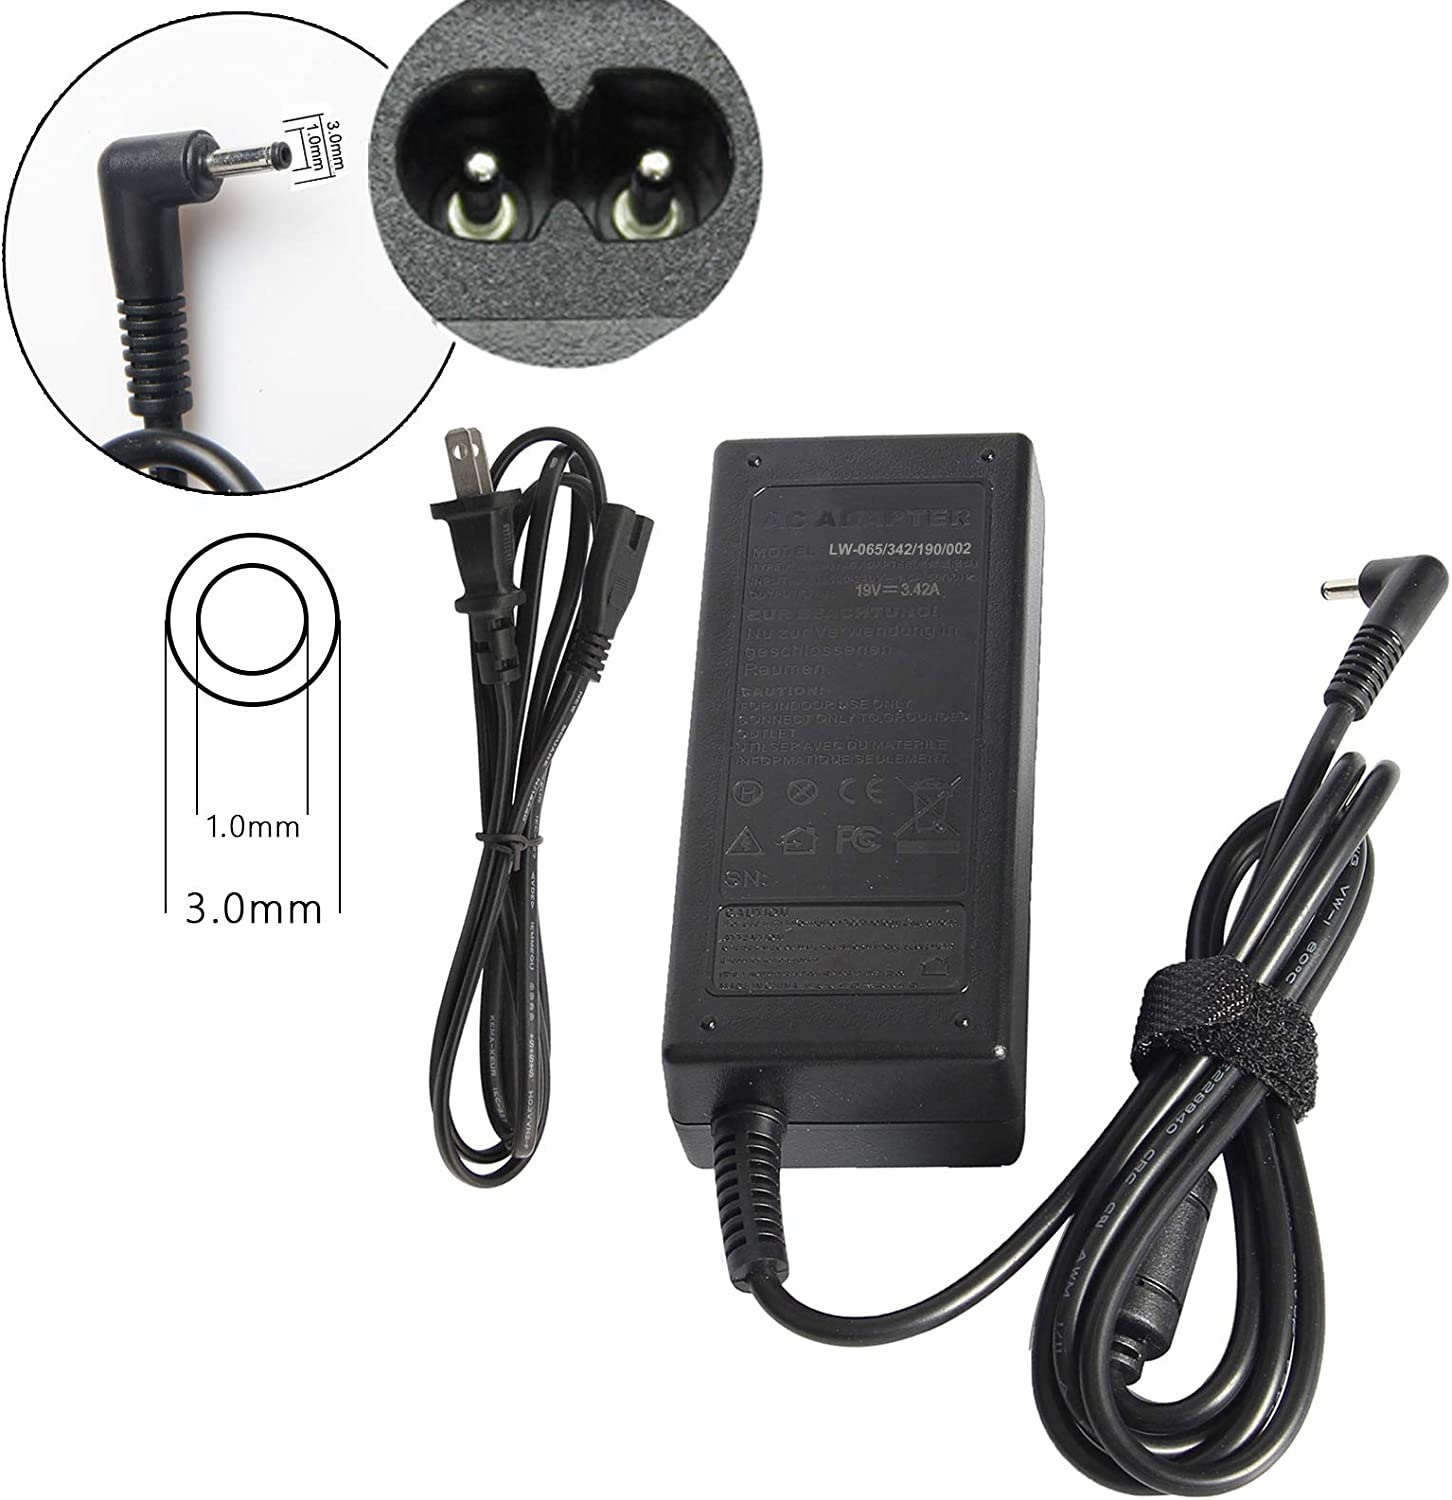 AC Adapter for Acer PA-1650-80 A11-065N1A A13-045N2A Chromebook 13 C810 CB5 14 CB3-431 15 C910 C720 C720P C720-2848,Aspire S5 S7 S5-371 S7-392 S7-393 + Power Cable 19V 3.42A 3.01.0mm